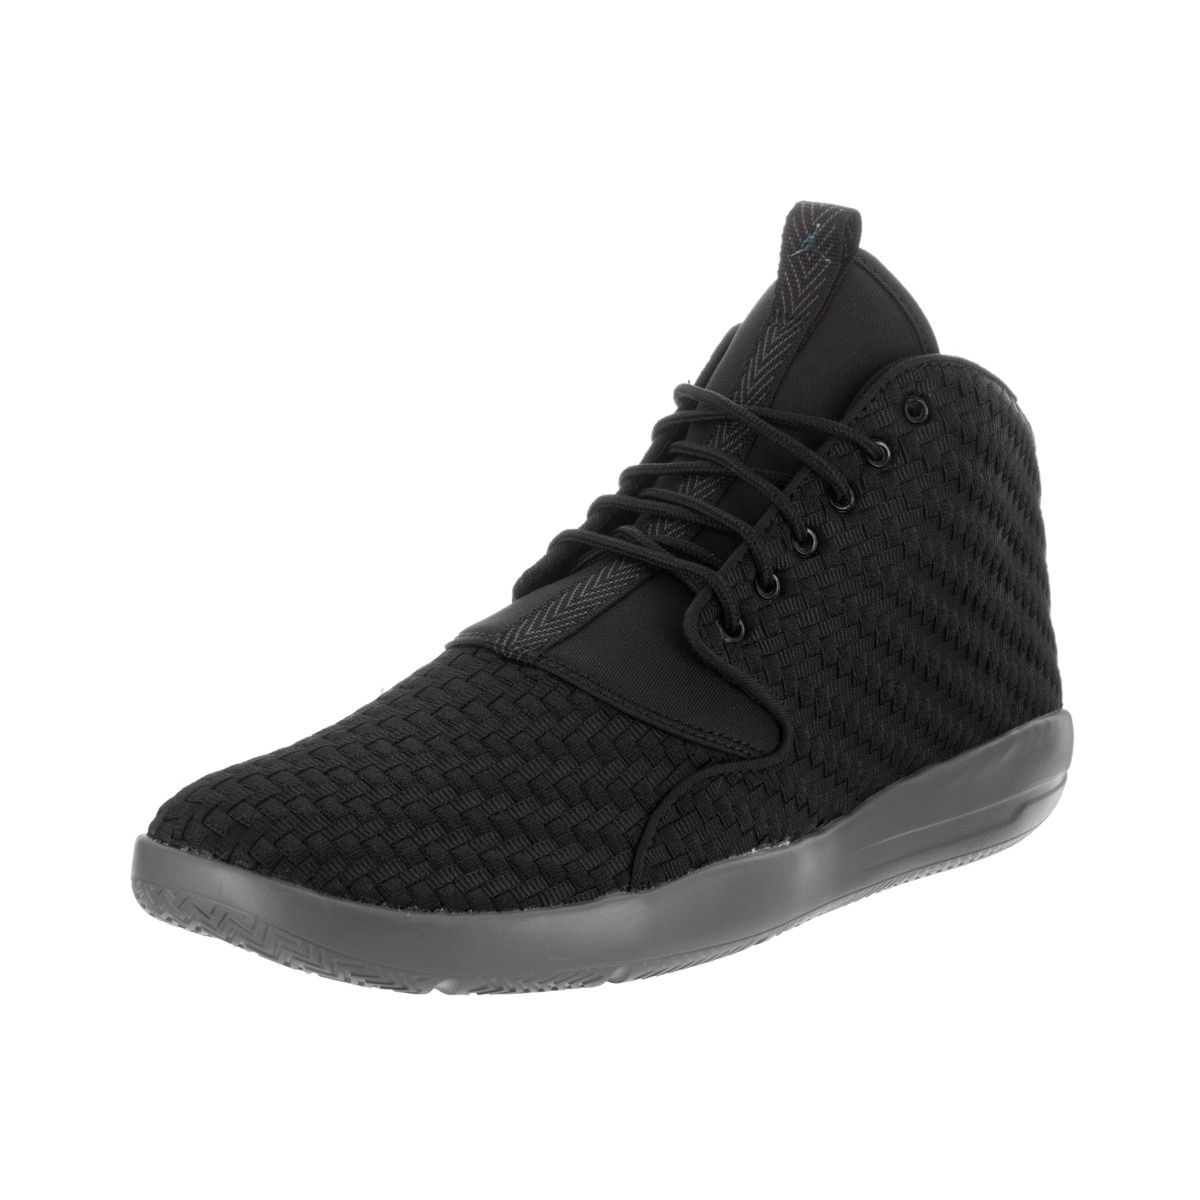 Nike Jordan Mens Jordan Eclipse Chukka Basketball Shoes